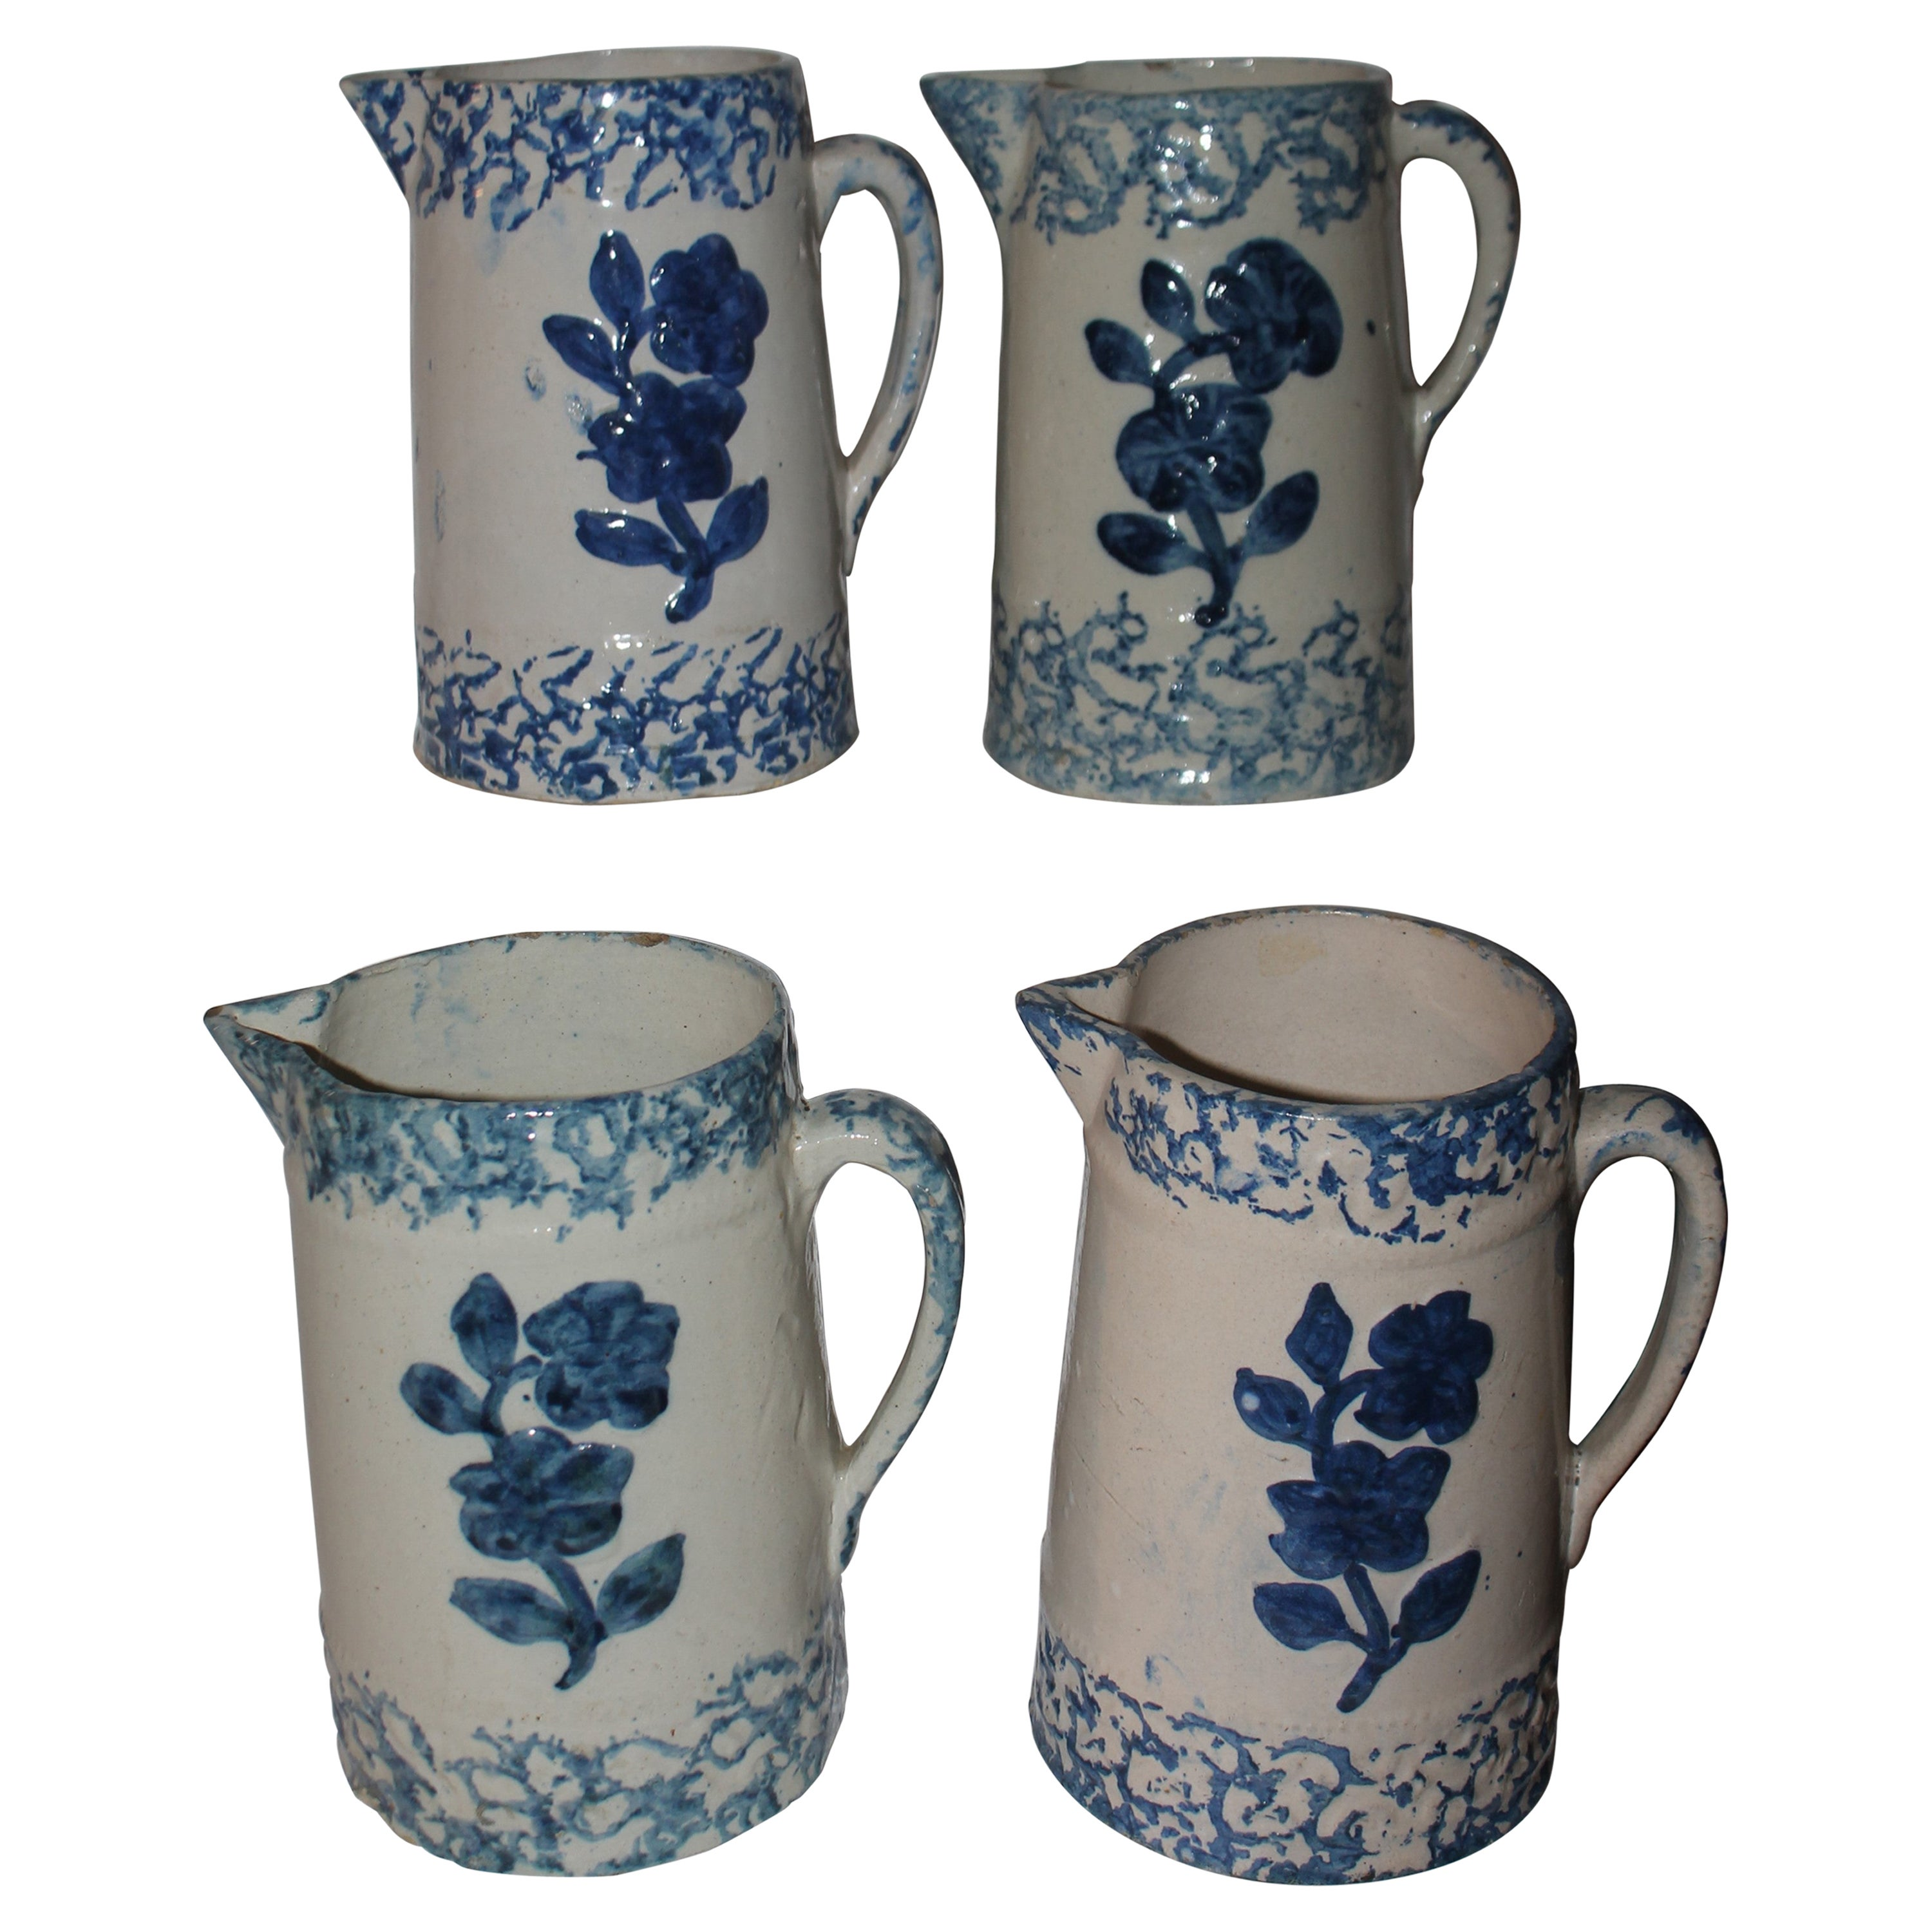 19th Century Sponge Ware Pottery Pitchers Collection of Four